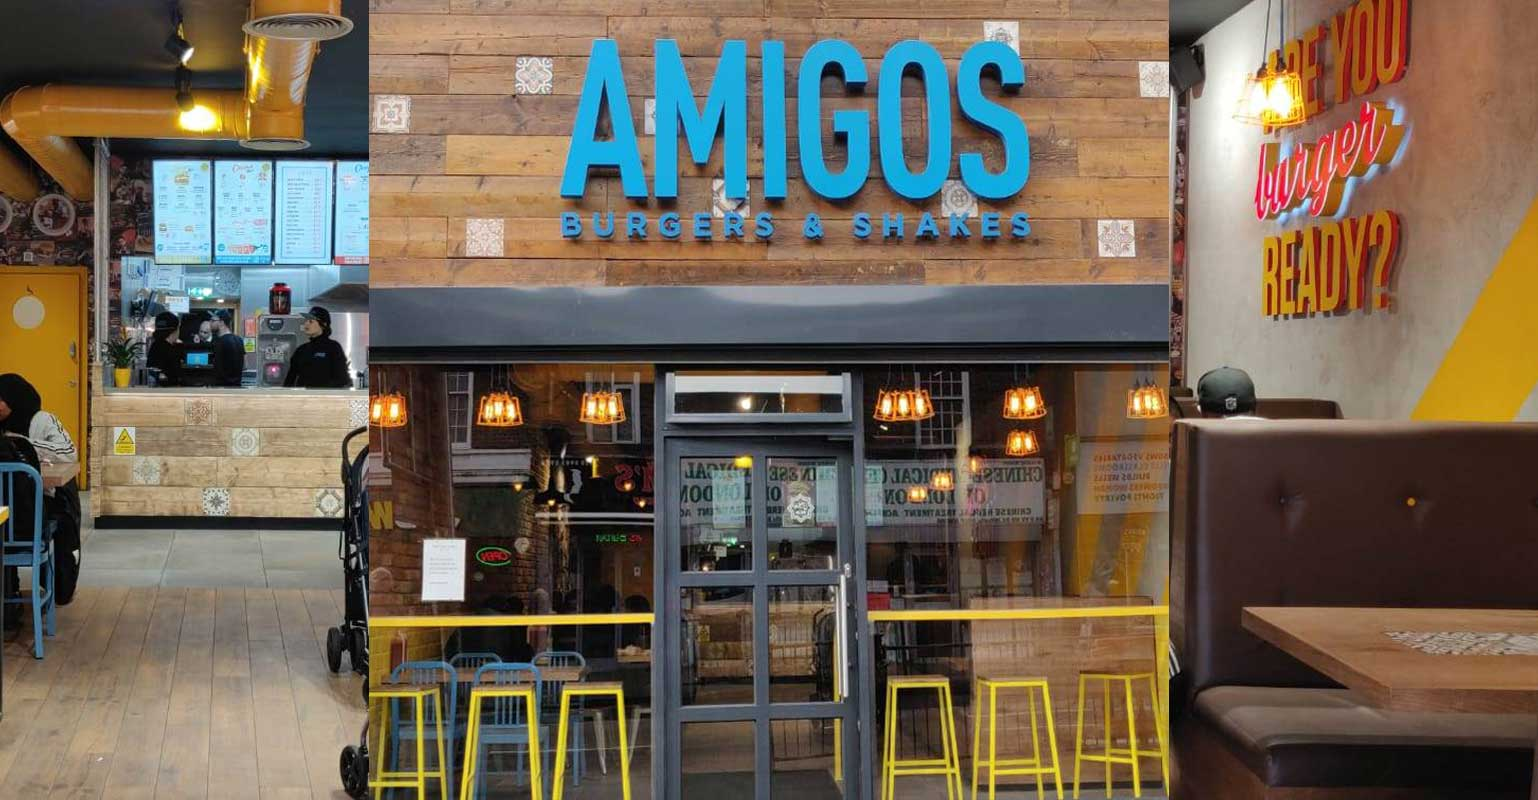 Amigos Burgers Amp Shakes Launches In Wembley Feed The Lion